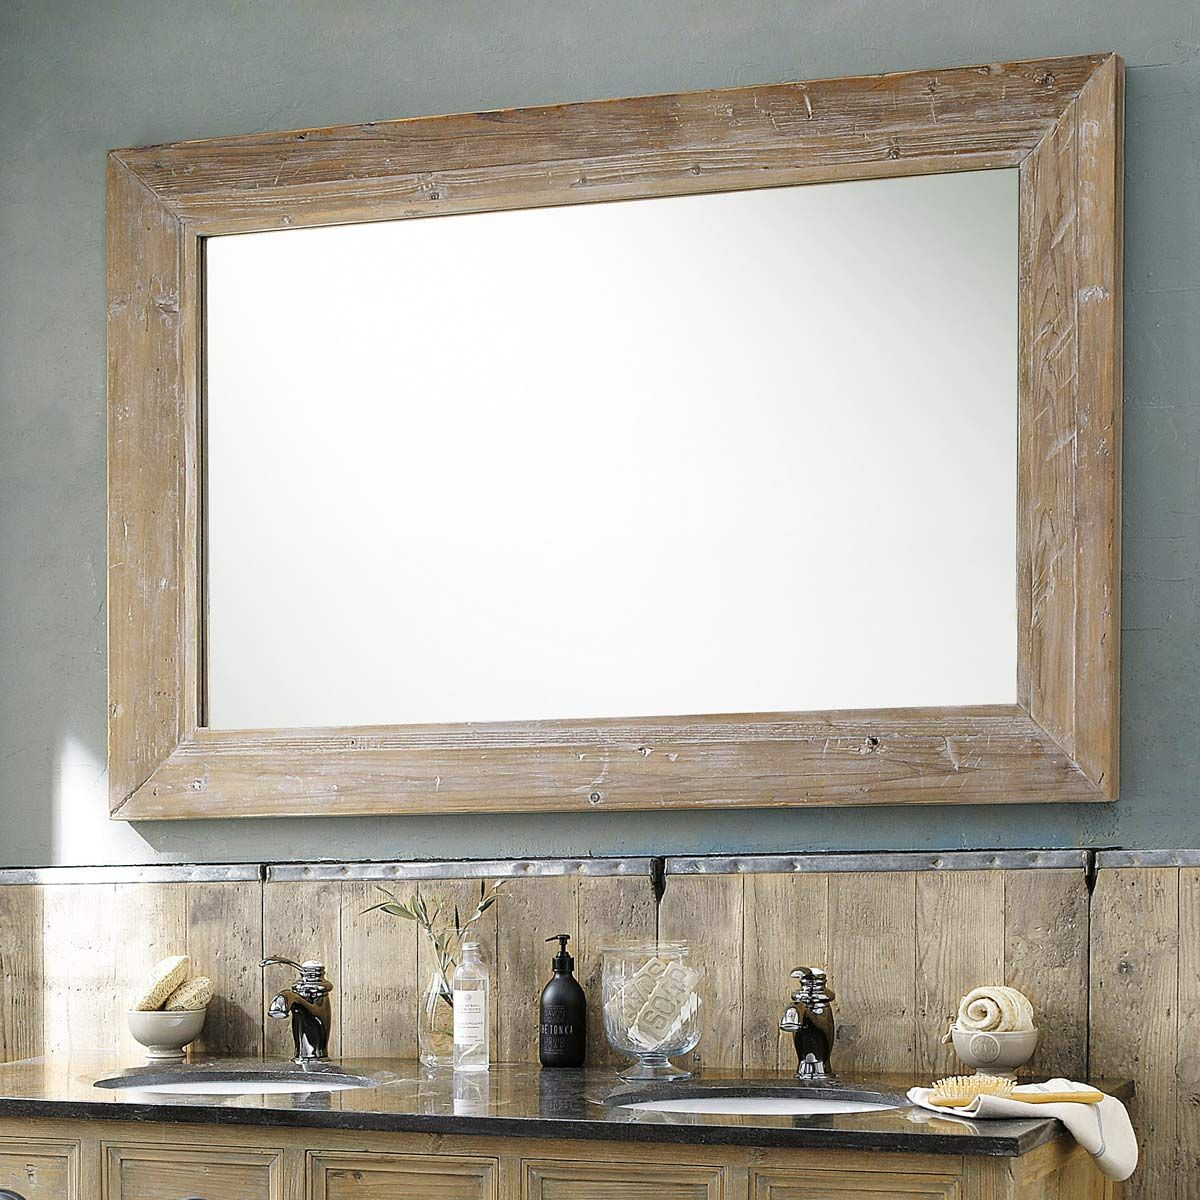 Miroir en bois blanchi h 200 cm cancale tradition for Grand miroir mural horizontal